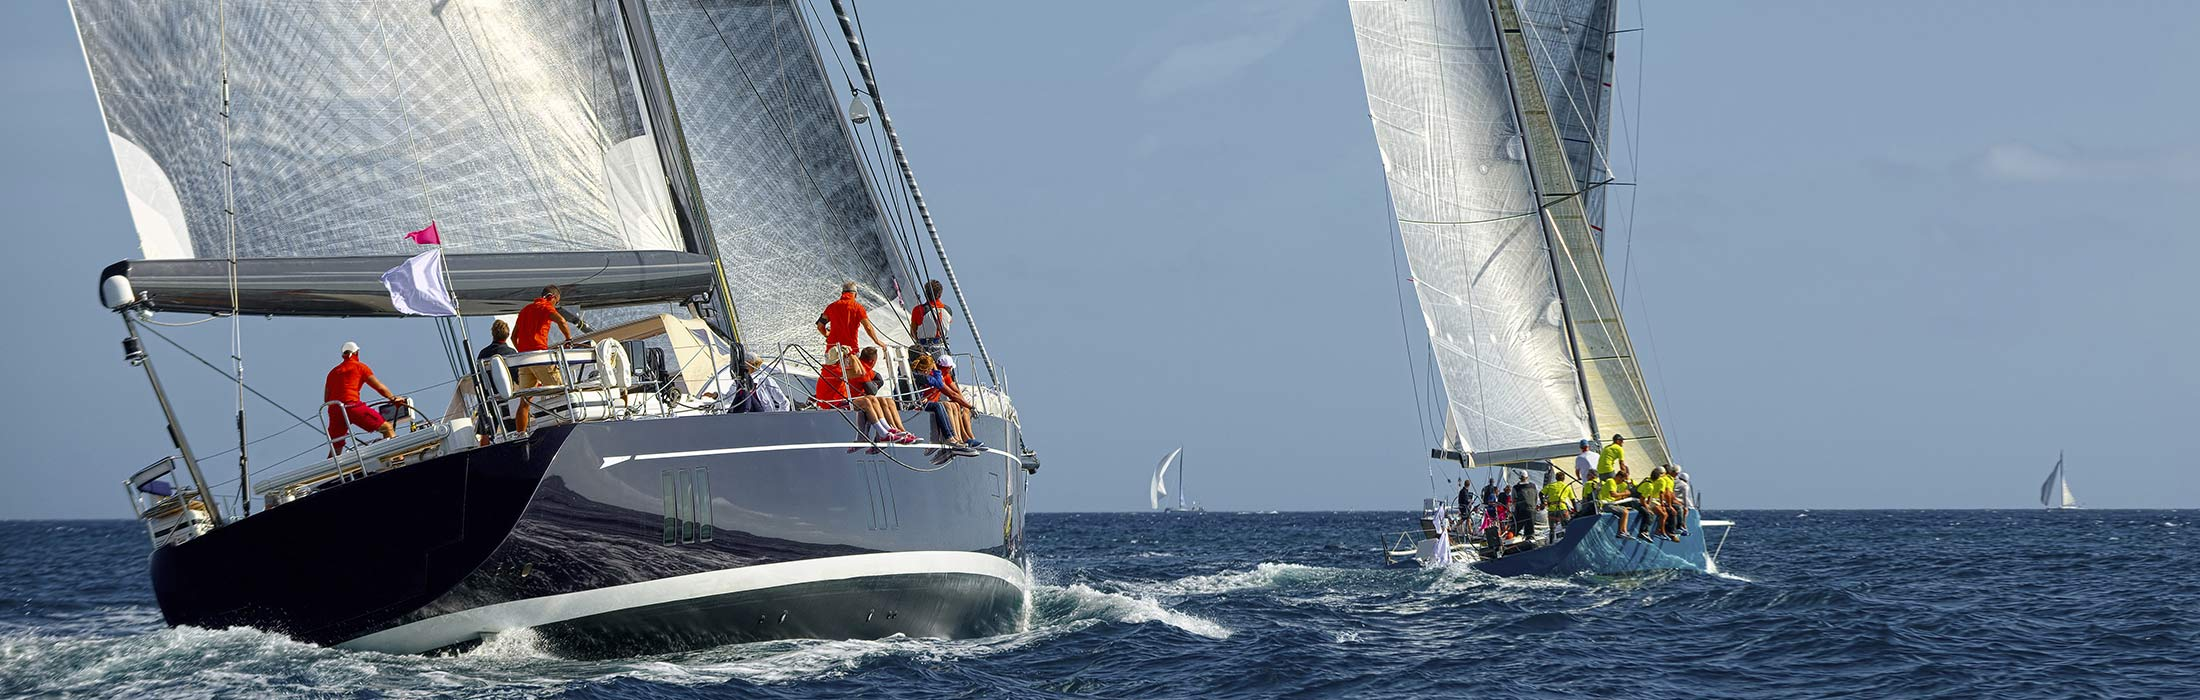 Sailing_Yachts_for_Sale_2.jpg